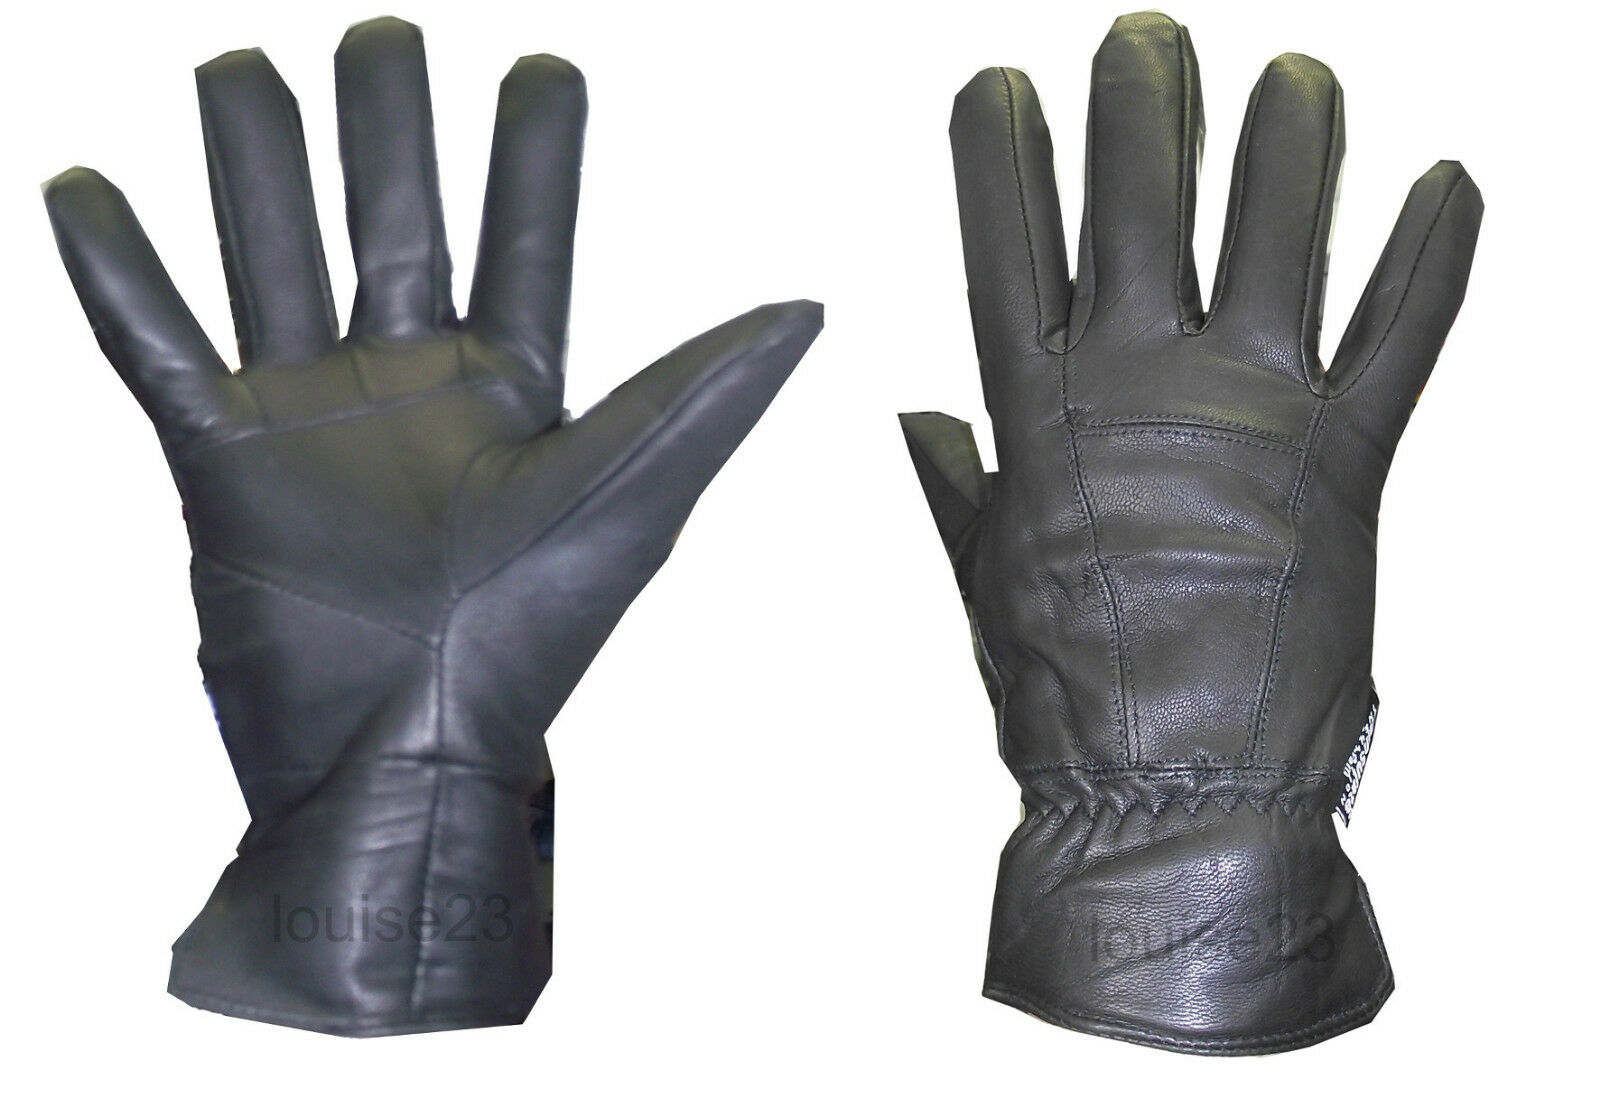 b2984be3576 Details about G18 MENS DESIGNER THINSULATE LINED WINTER WARM LEATHER GLOVE  DRIVING SMART BLACK